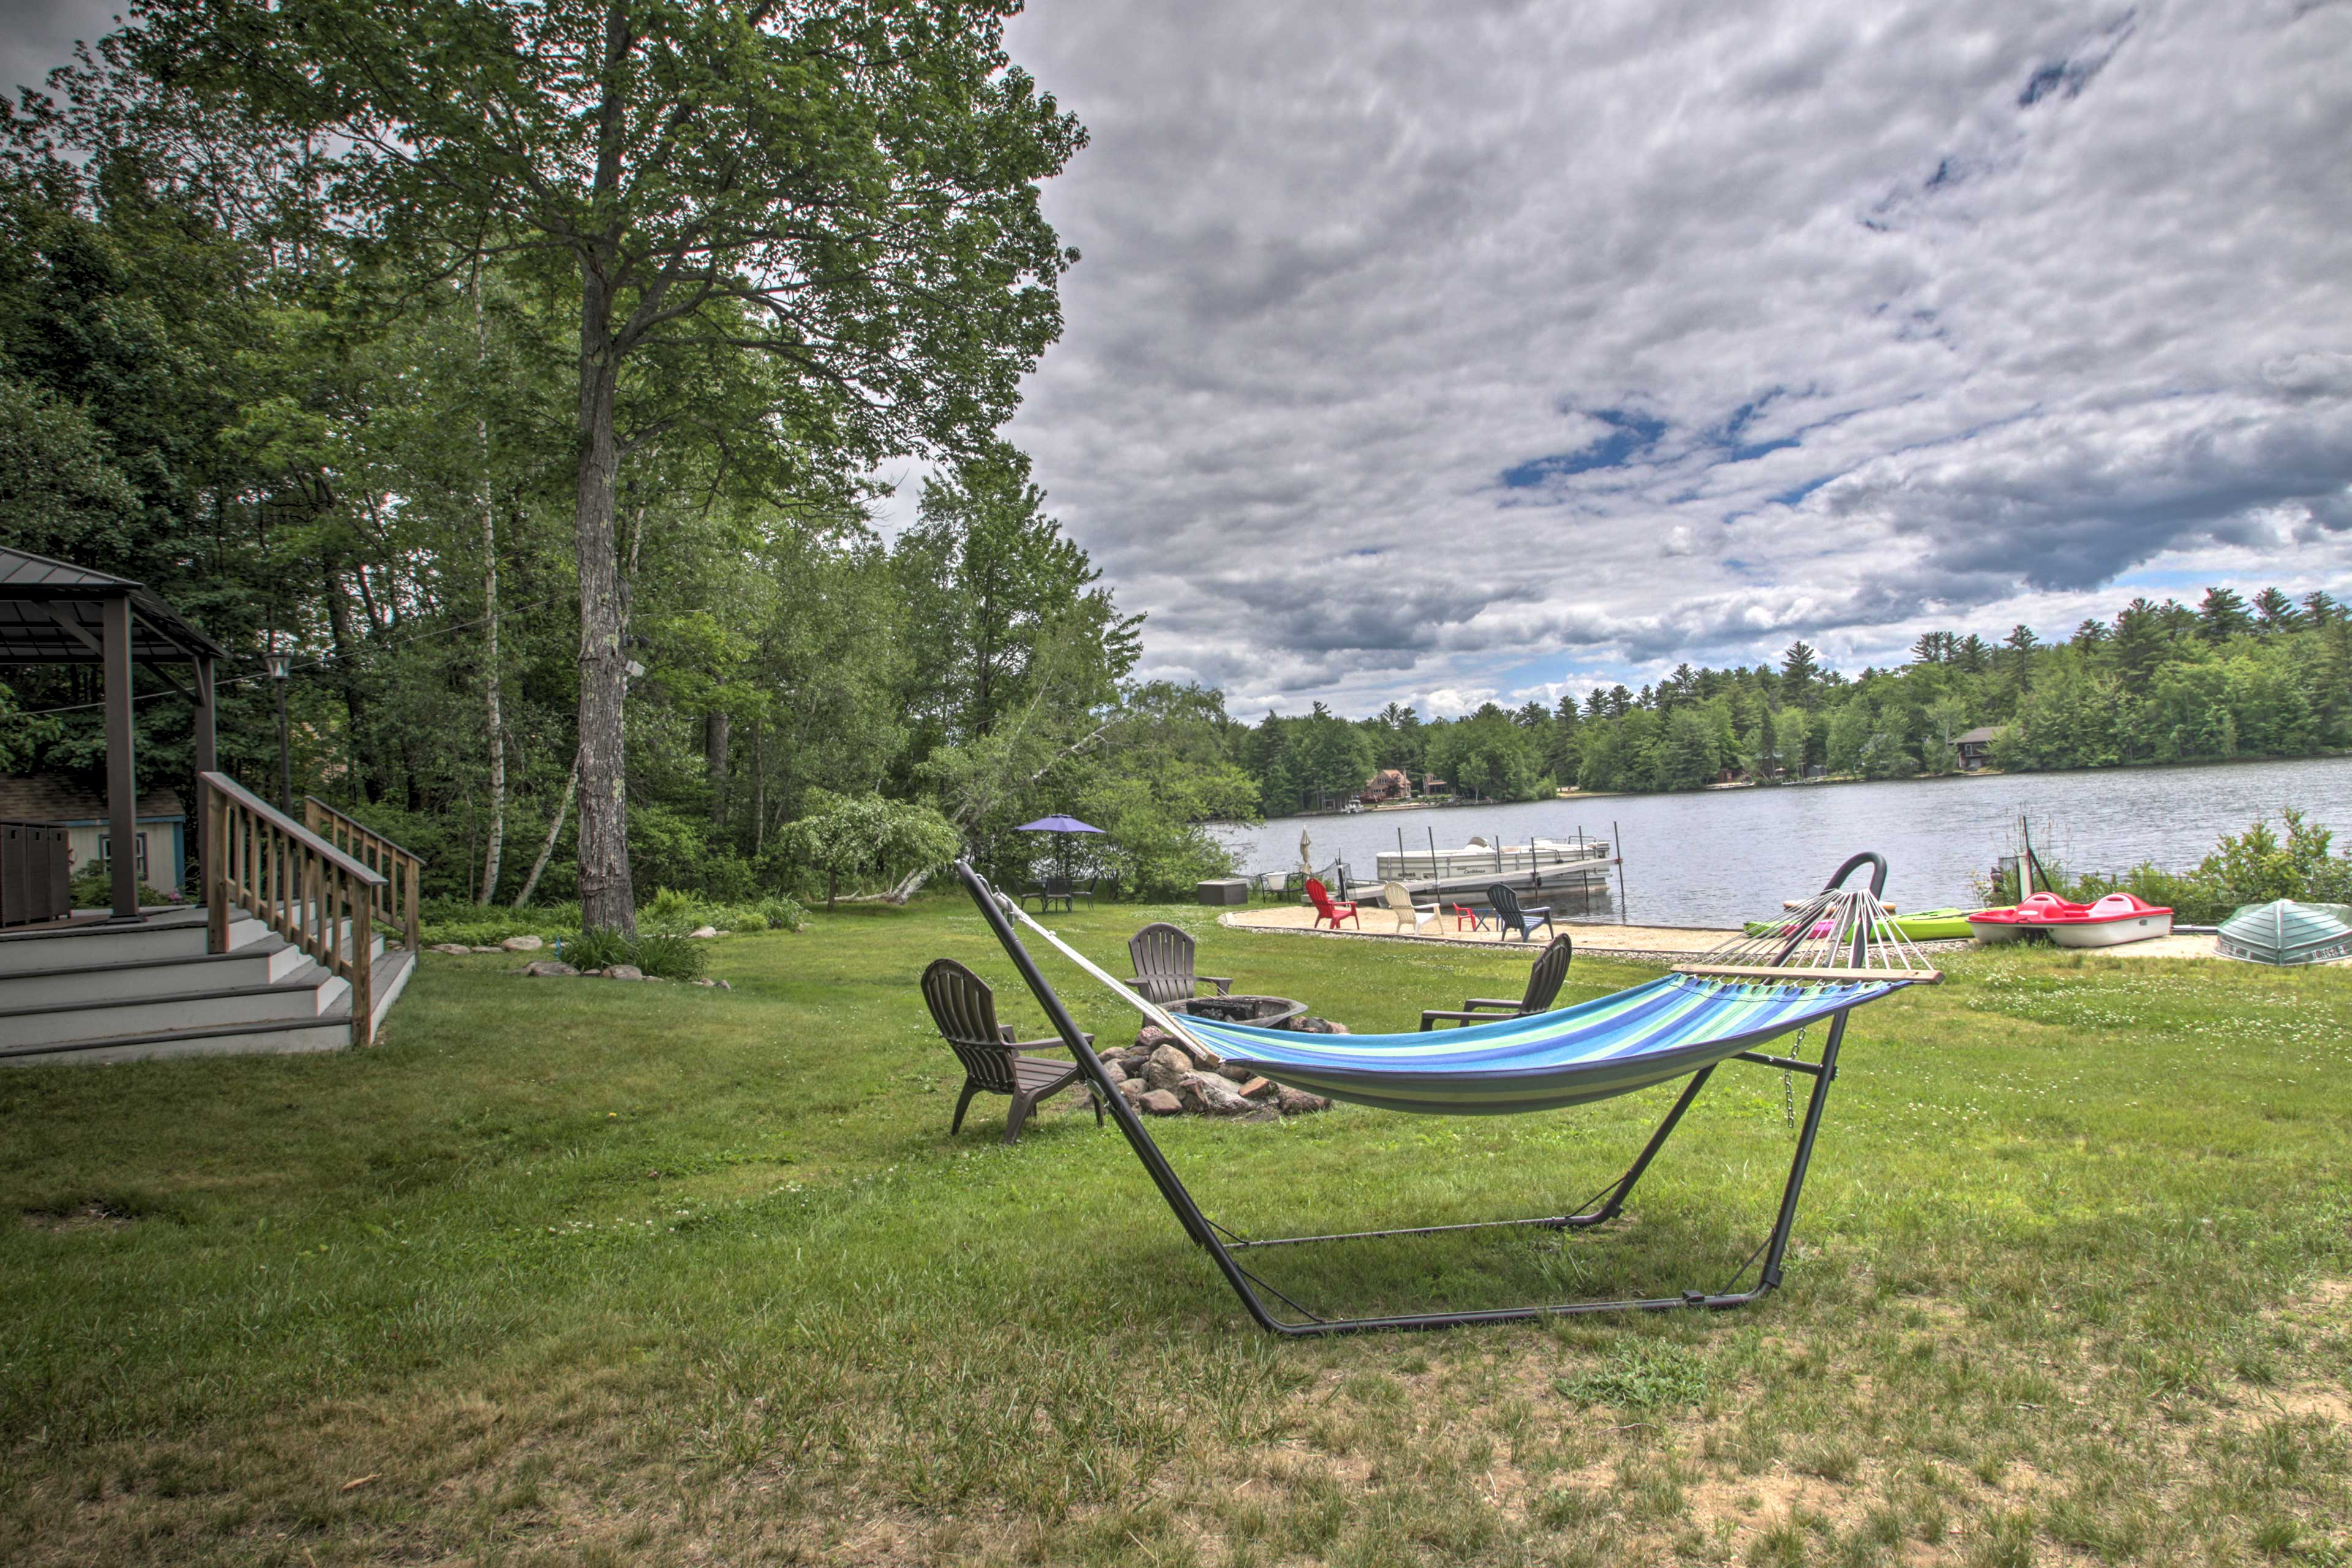 Sway the days away in the hammock.